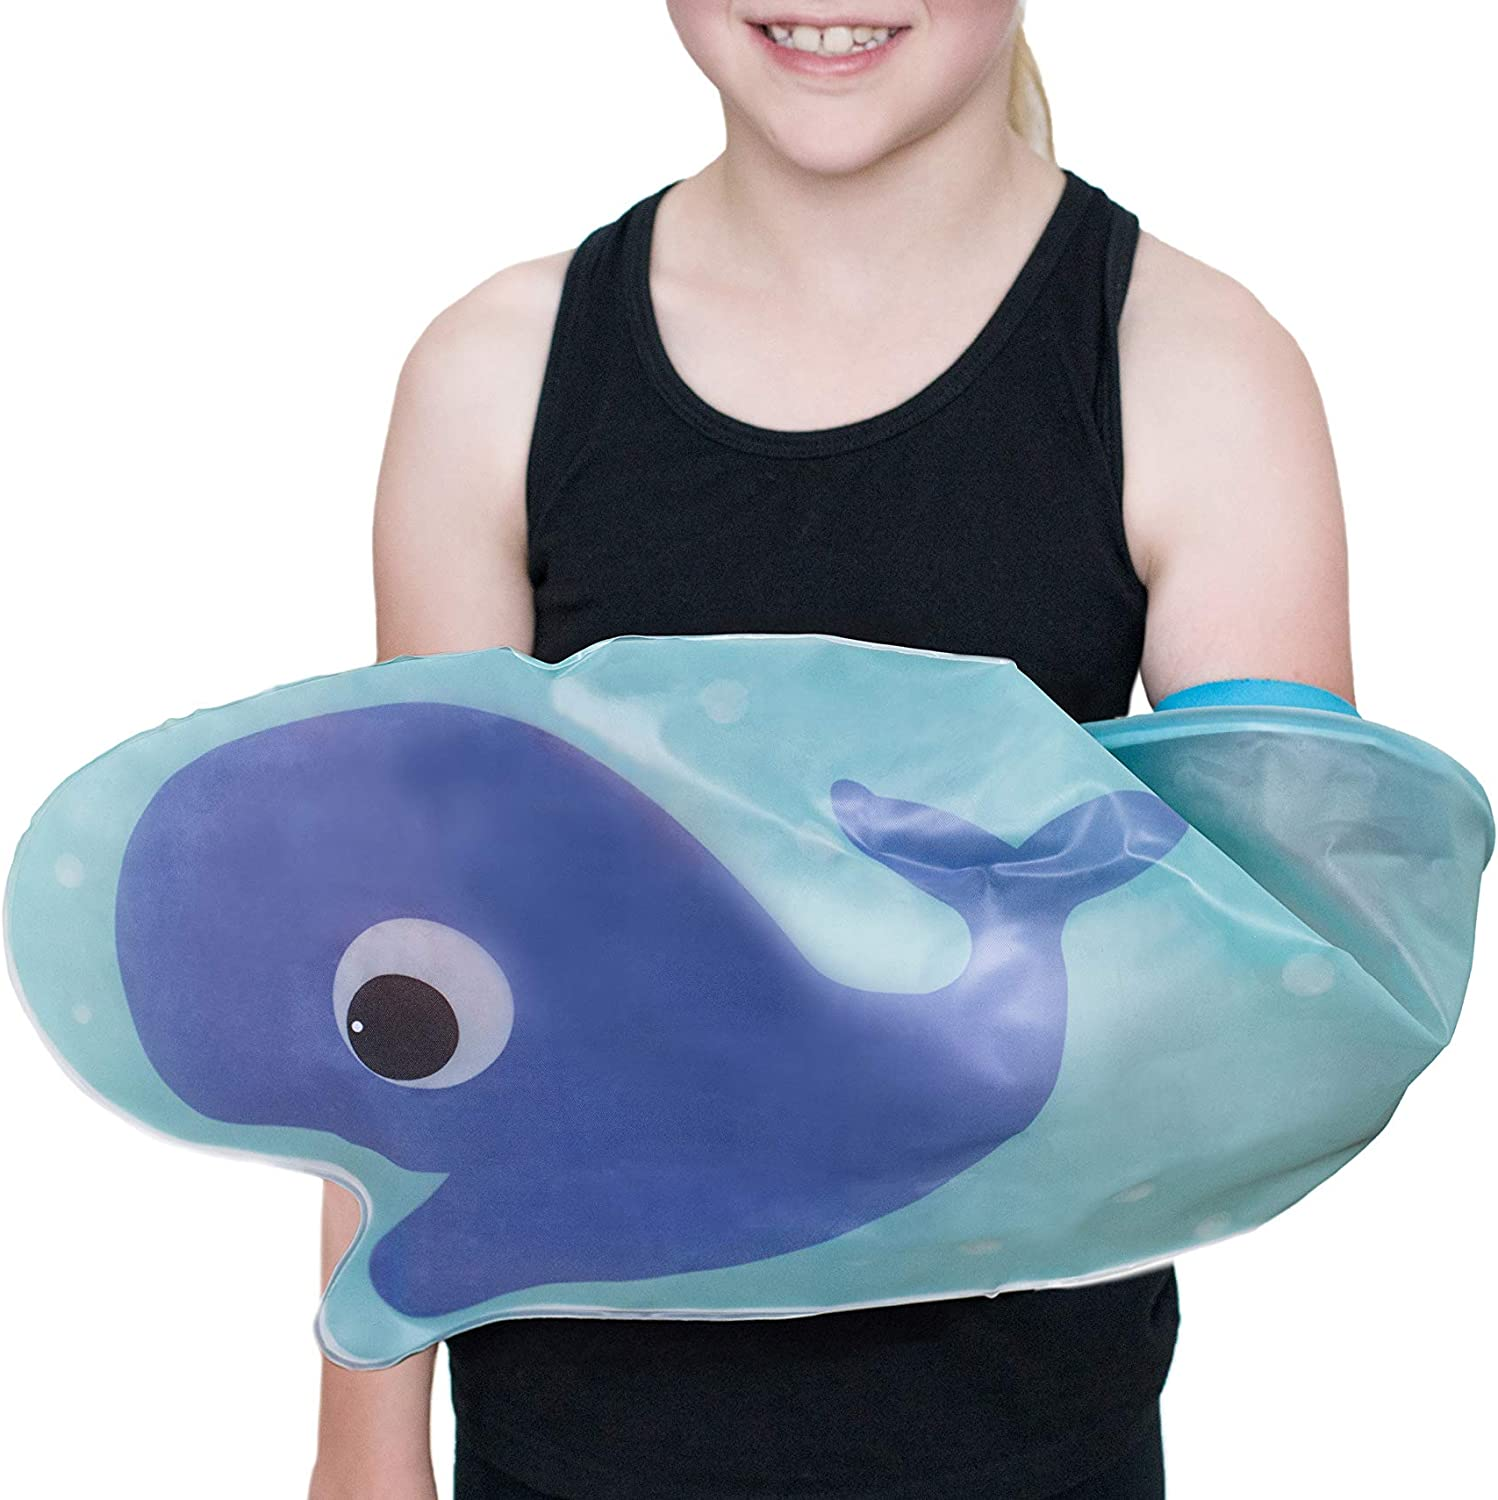 Crazy Waterproof Cast Cover Arm | Ages 2-7 (Various Designs)